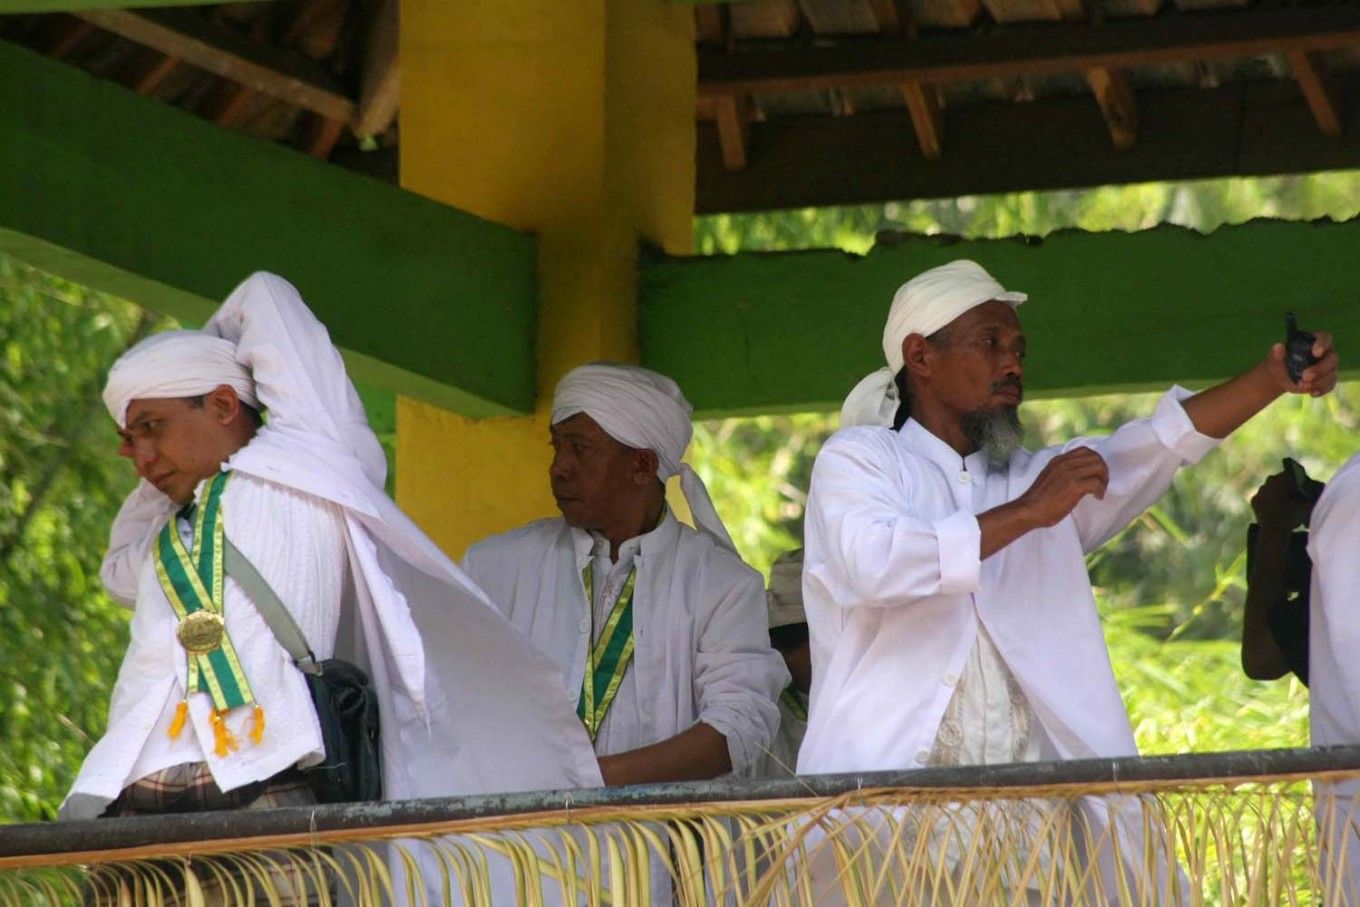 Stretching out: Local clerics get ready to distribute apem (traditional rice pancakes) to thousands of participants in Jatinom, Klaten, Central Java. JP/ Maksum Nur Fauzan